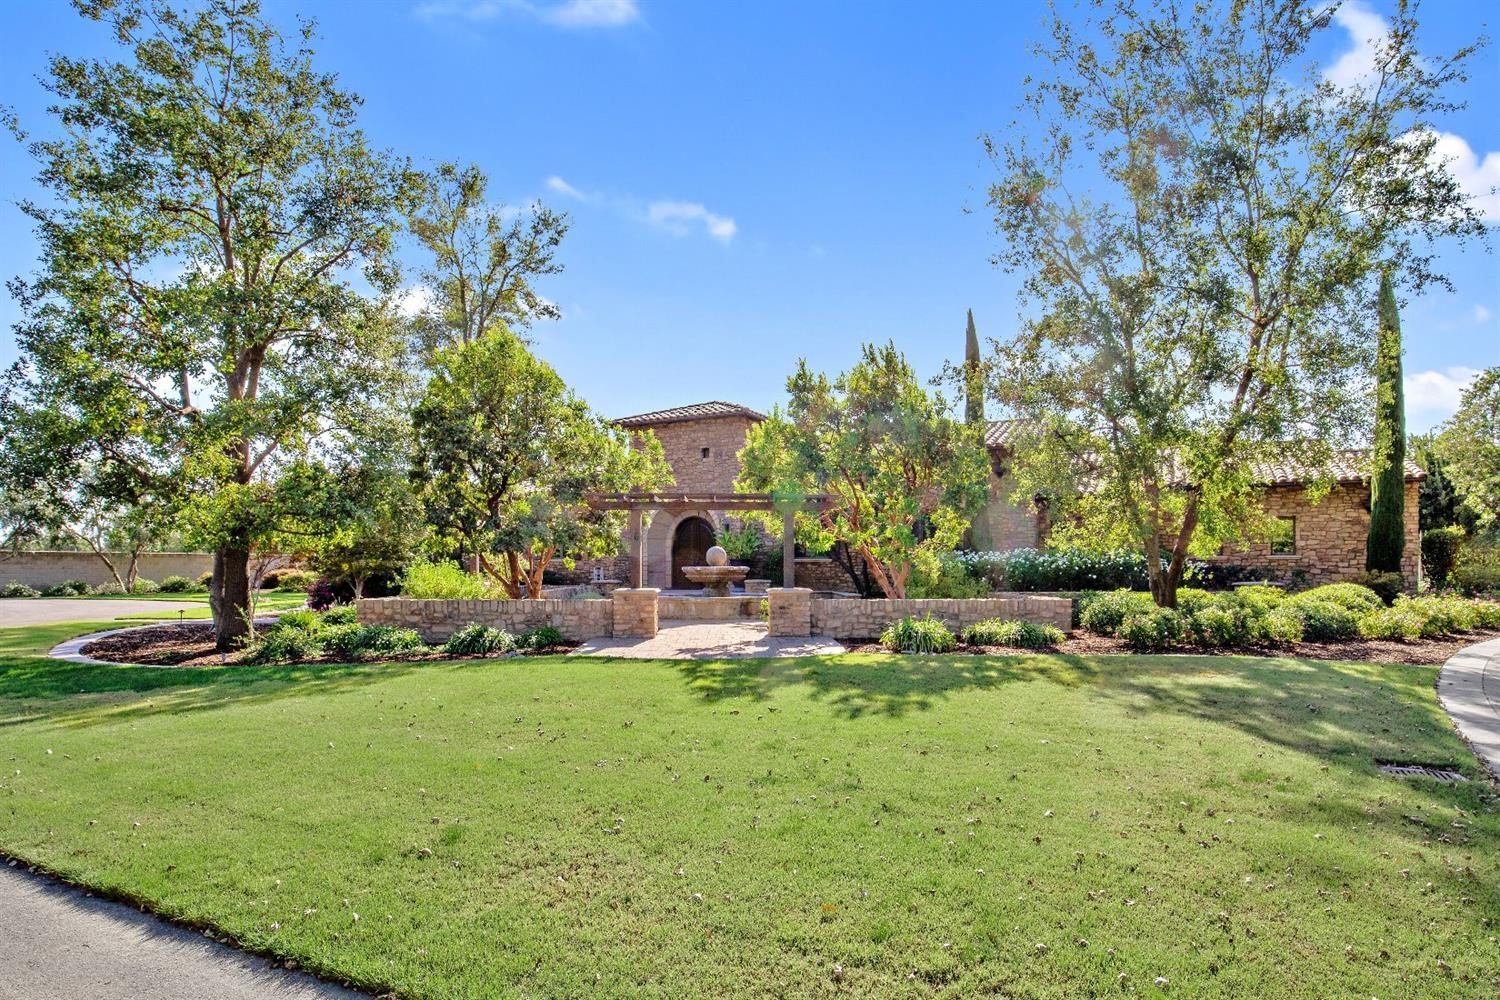 Residing on a spacious 1.3 acre lot in Visalia, this beautiful Tuscan style home is an entertainers dream. Host family and friends inside the 6,719sq. ft. home complete with a Butler's kitchen, separate full kitchen complete with upgraded appliances, and a dining room table that seats 14+ people. Escape to your master bedroom while children are playing in the over-sized game room. The master features his and hers closets, toilets, and vanities. Relax in your sunken in jet tub or opt for a steam shower. Separate Casita with bedroom, full bath, and kitchenette. There is also a large game room with restrooms by the pool. Additional features: exterior cameras, large sliders to the pool, fruit trees, two separate offices, and parking accommodations for 20 vehicles. If you are interested in viewing this listing, please contact us today!